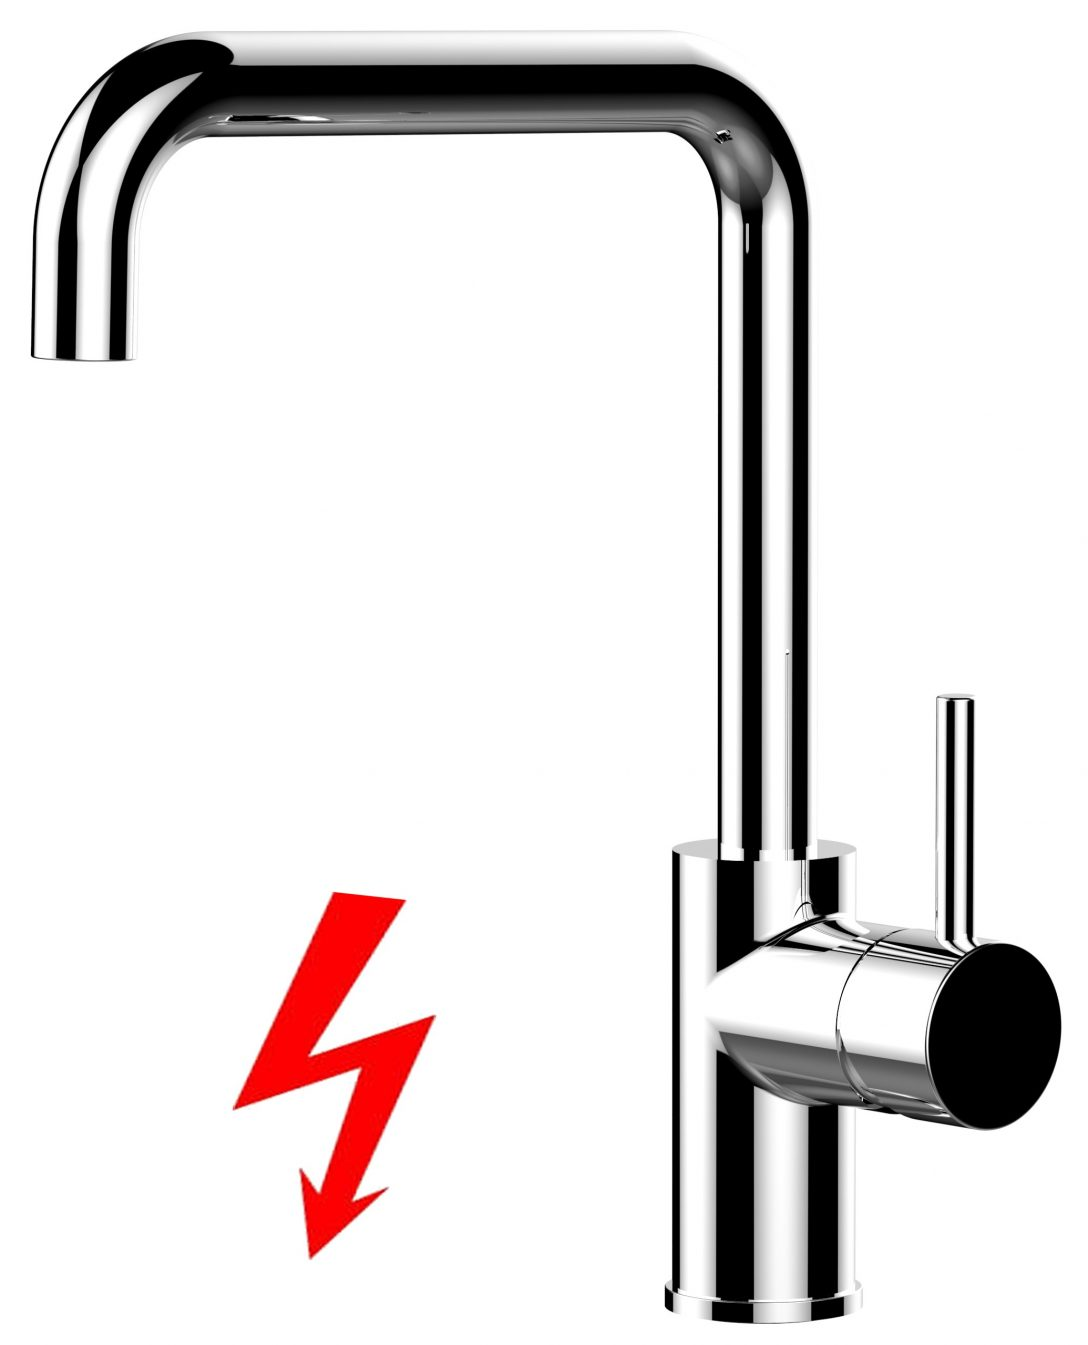 Large Size of Niederdruck Armatur Küche Grohe Niederdruck Armatur Küche Mit Spülmaschinenanschluss Niederdruck Armatur Küche Anthrazit Niederdruck Armatur Küche Ausziehbar Küche Niederdruck Armatur Küche